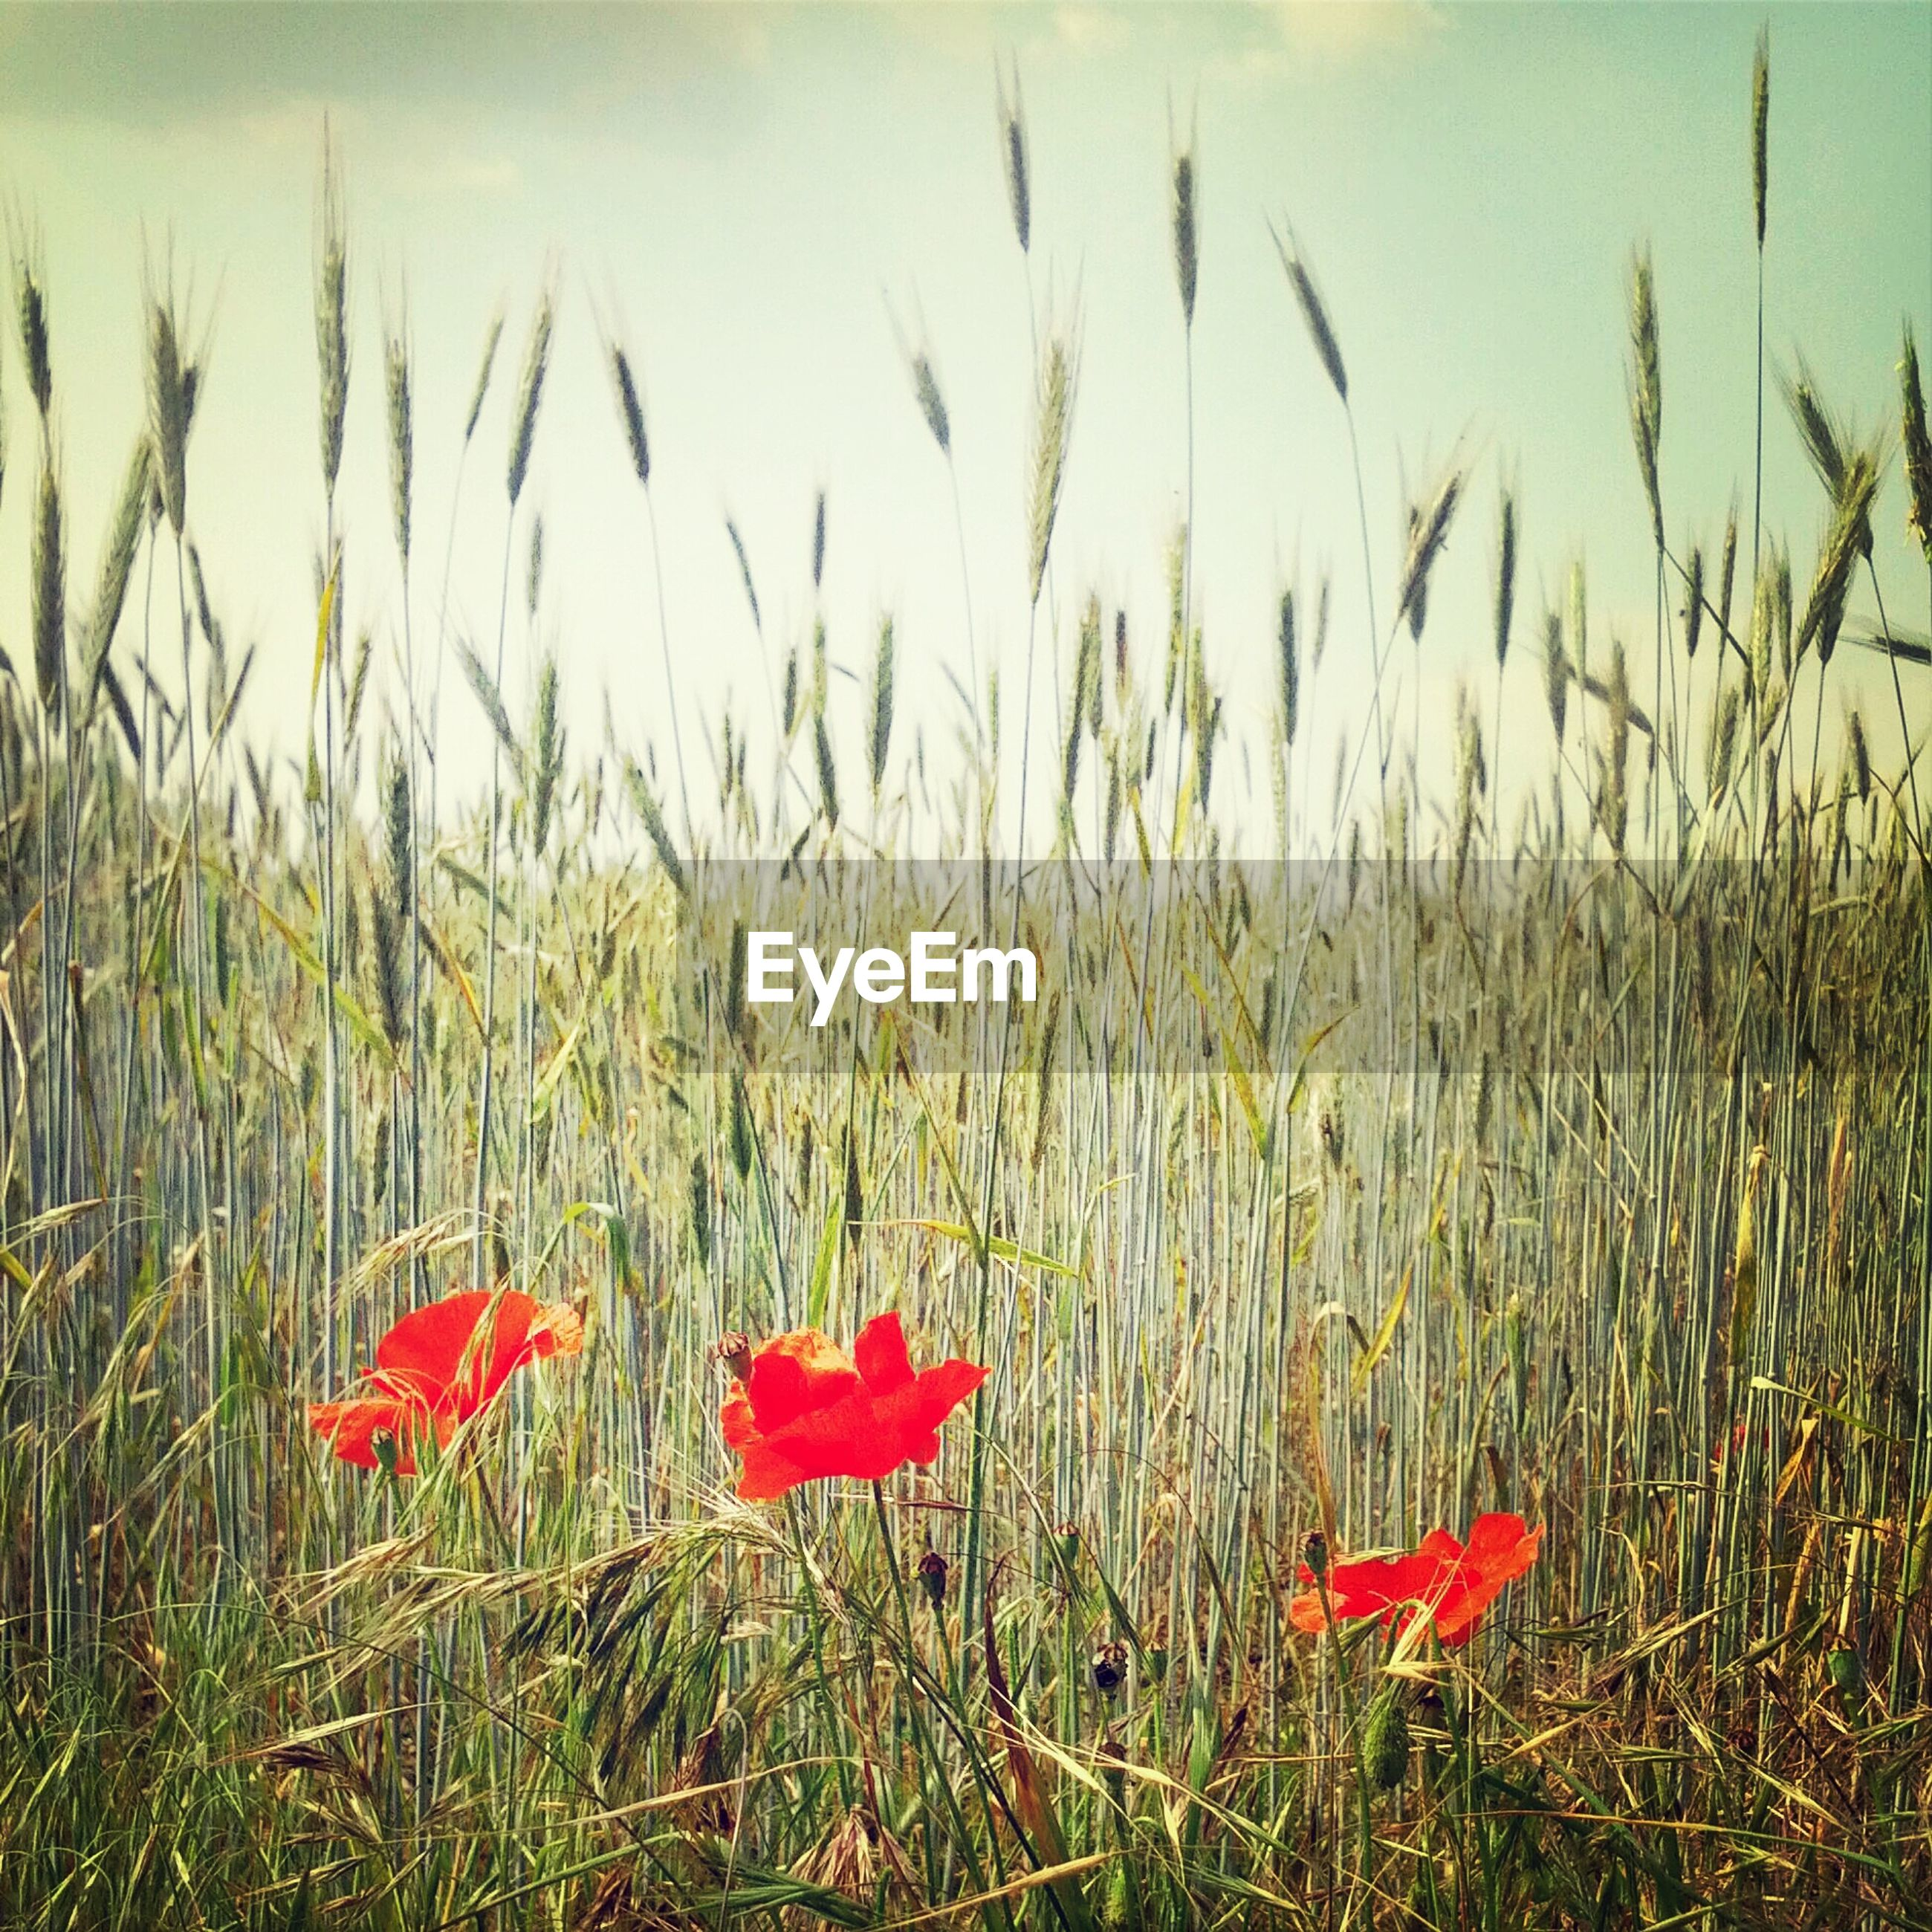 View of red flowers growing in field